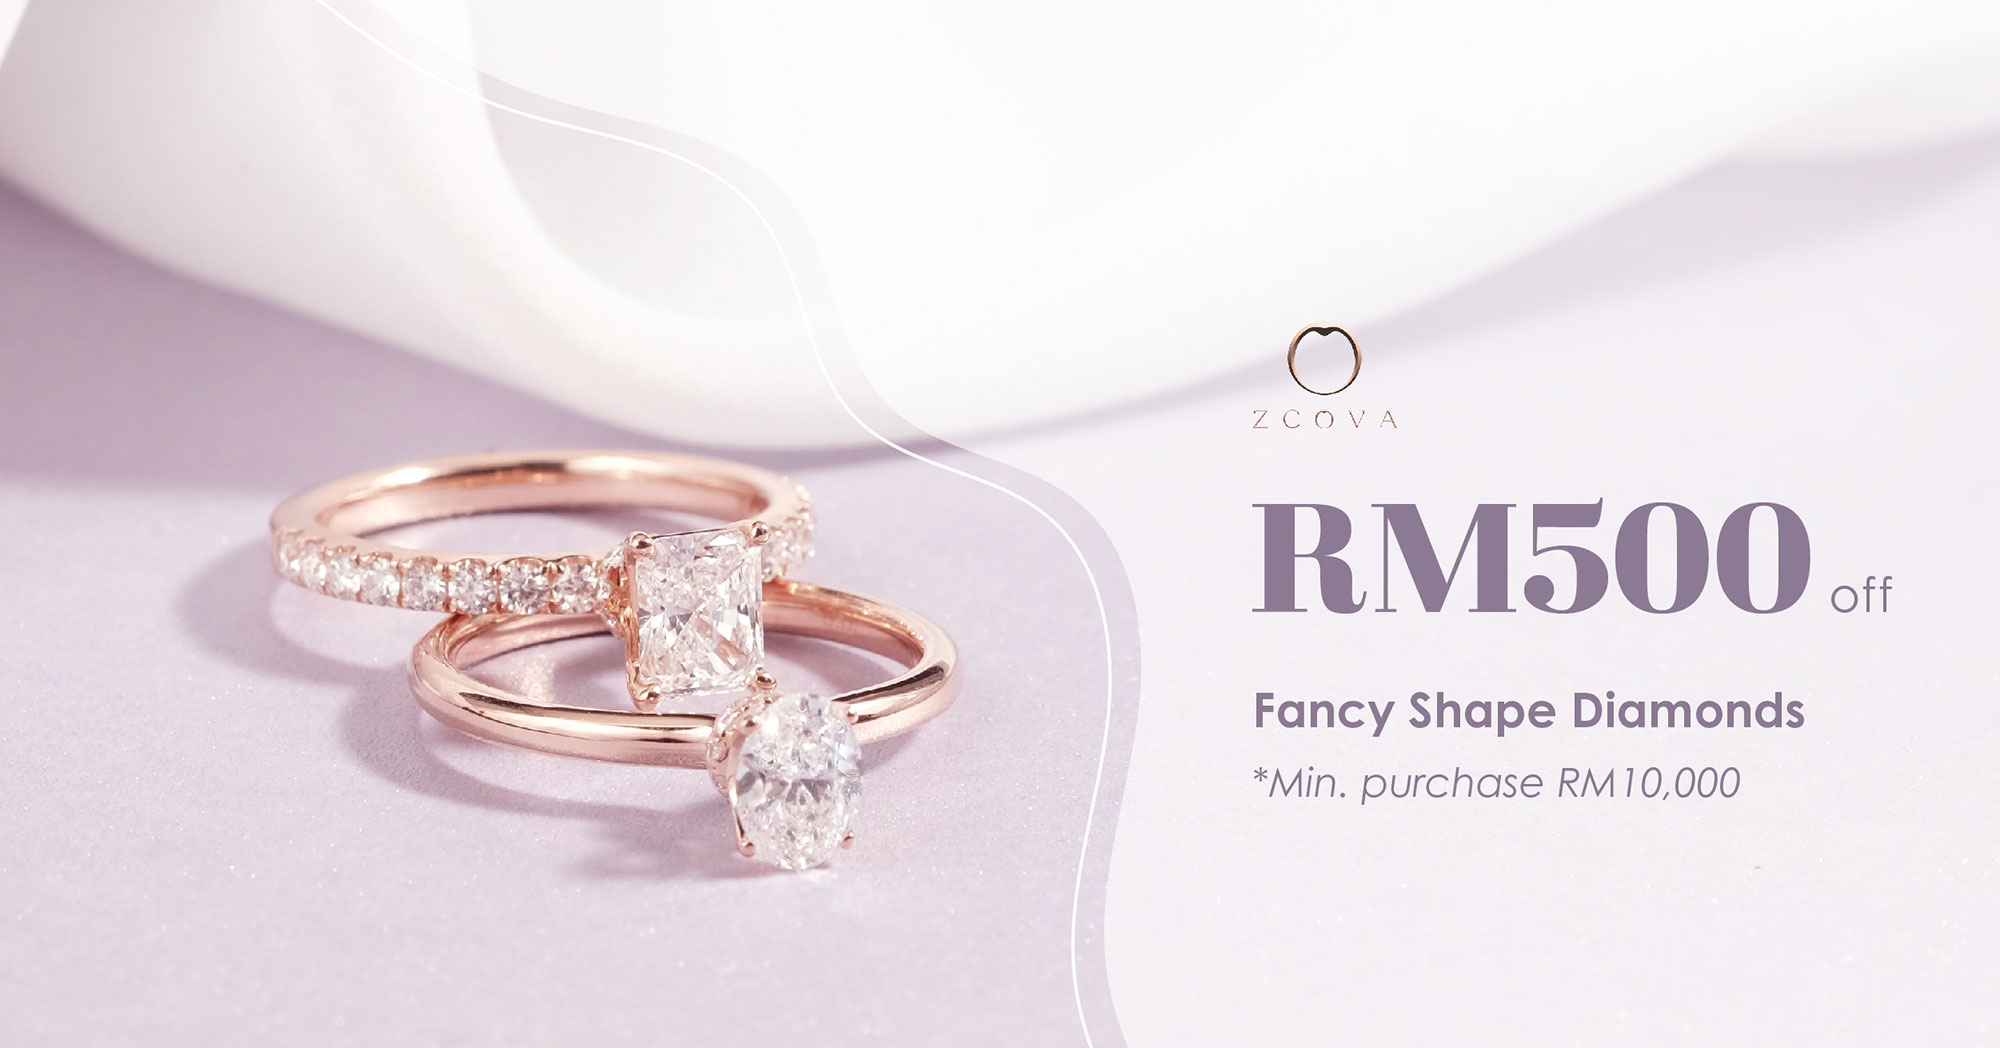 Fancy Shape Diamond Ring Promotion Malaysia